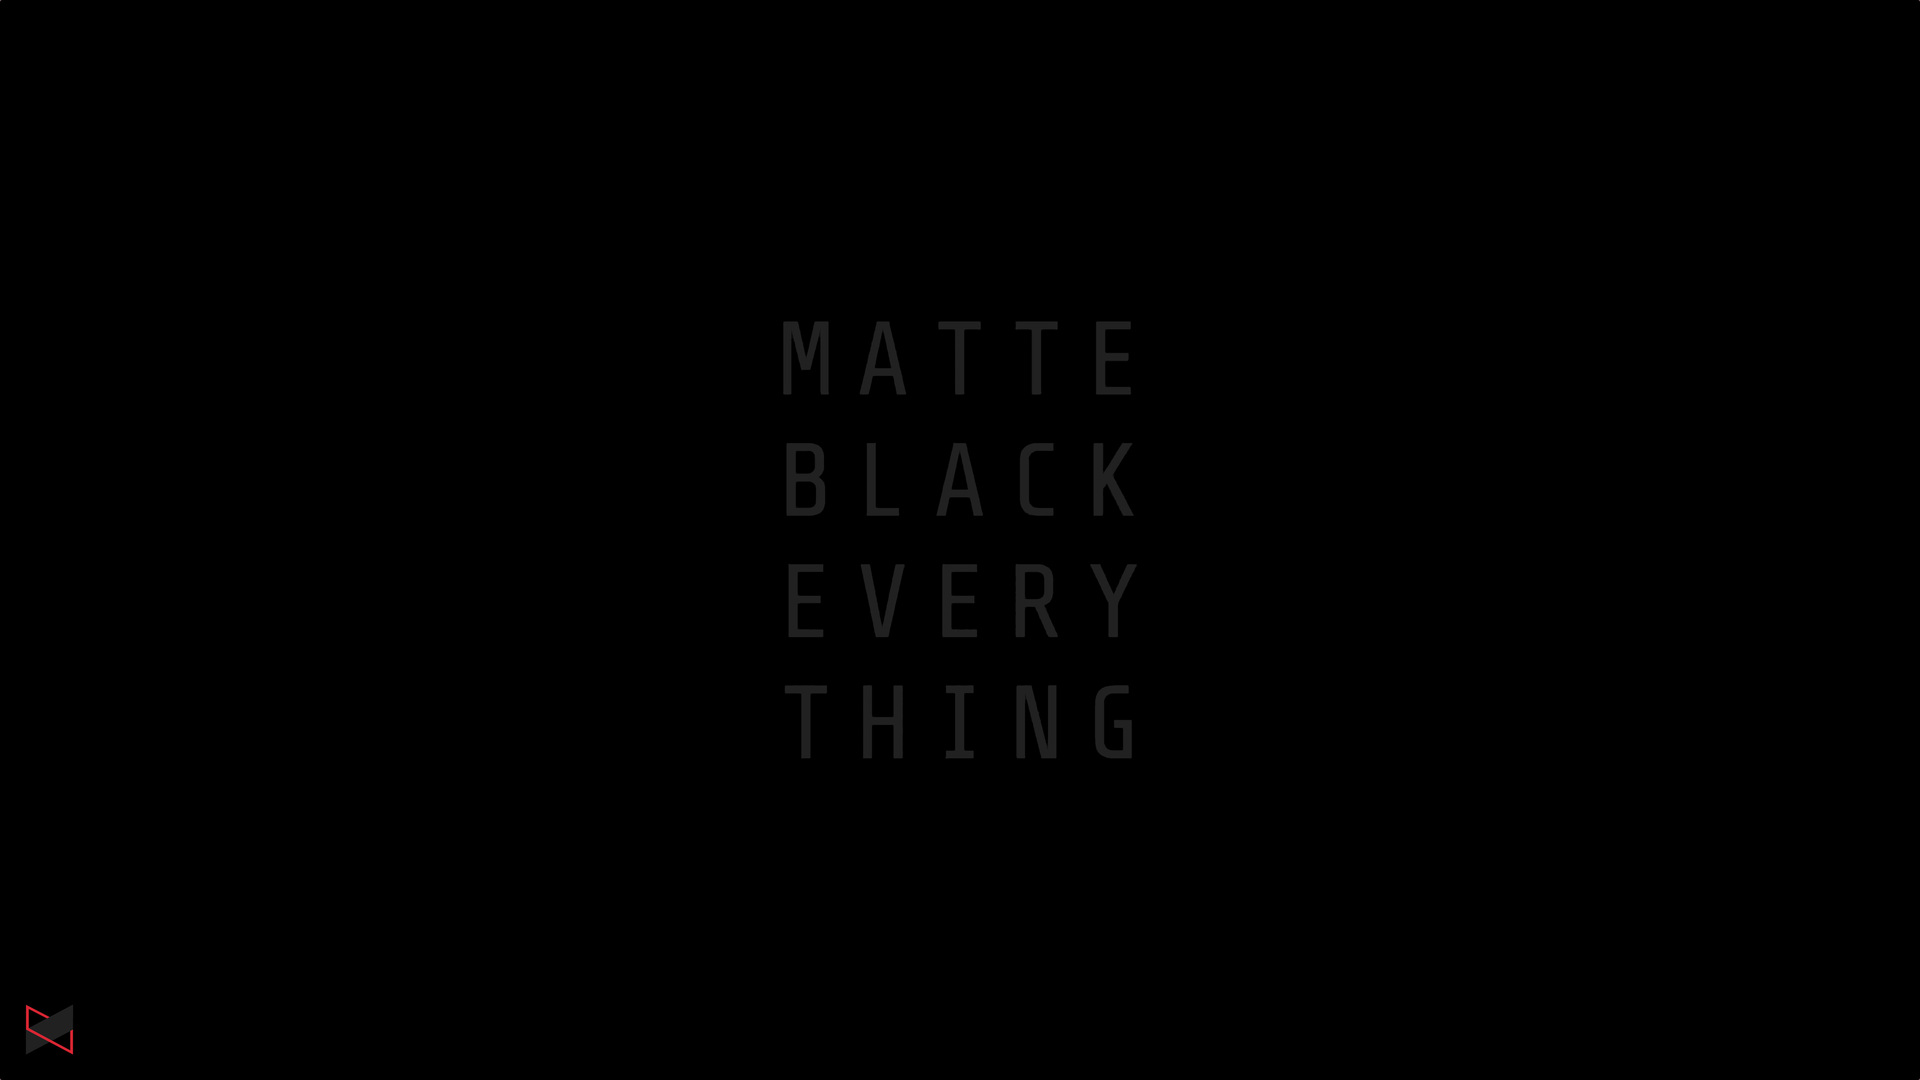 mkbhd matte wallpapers everything 5k desktop 4k hd laptop 1080p ipad iphone backgrounds typography resolution hdqwalls b0